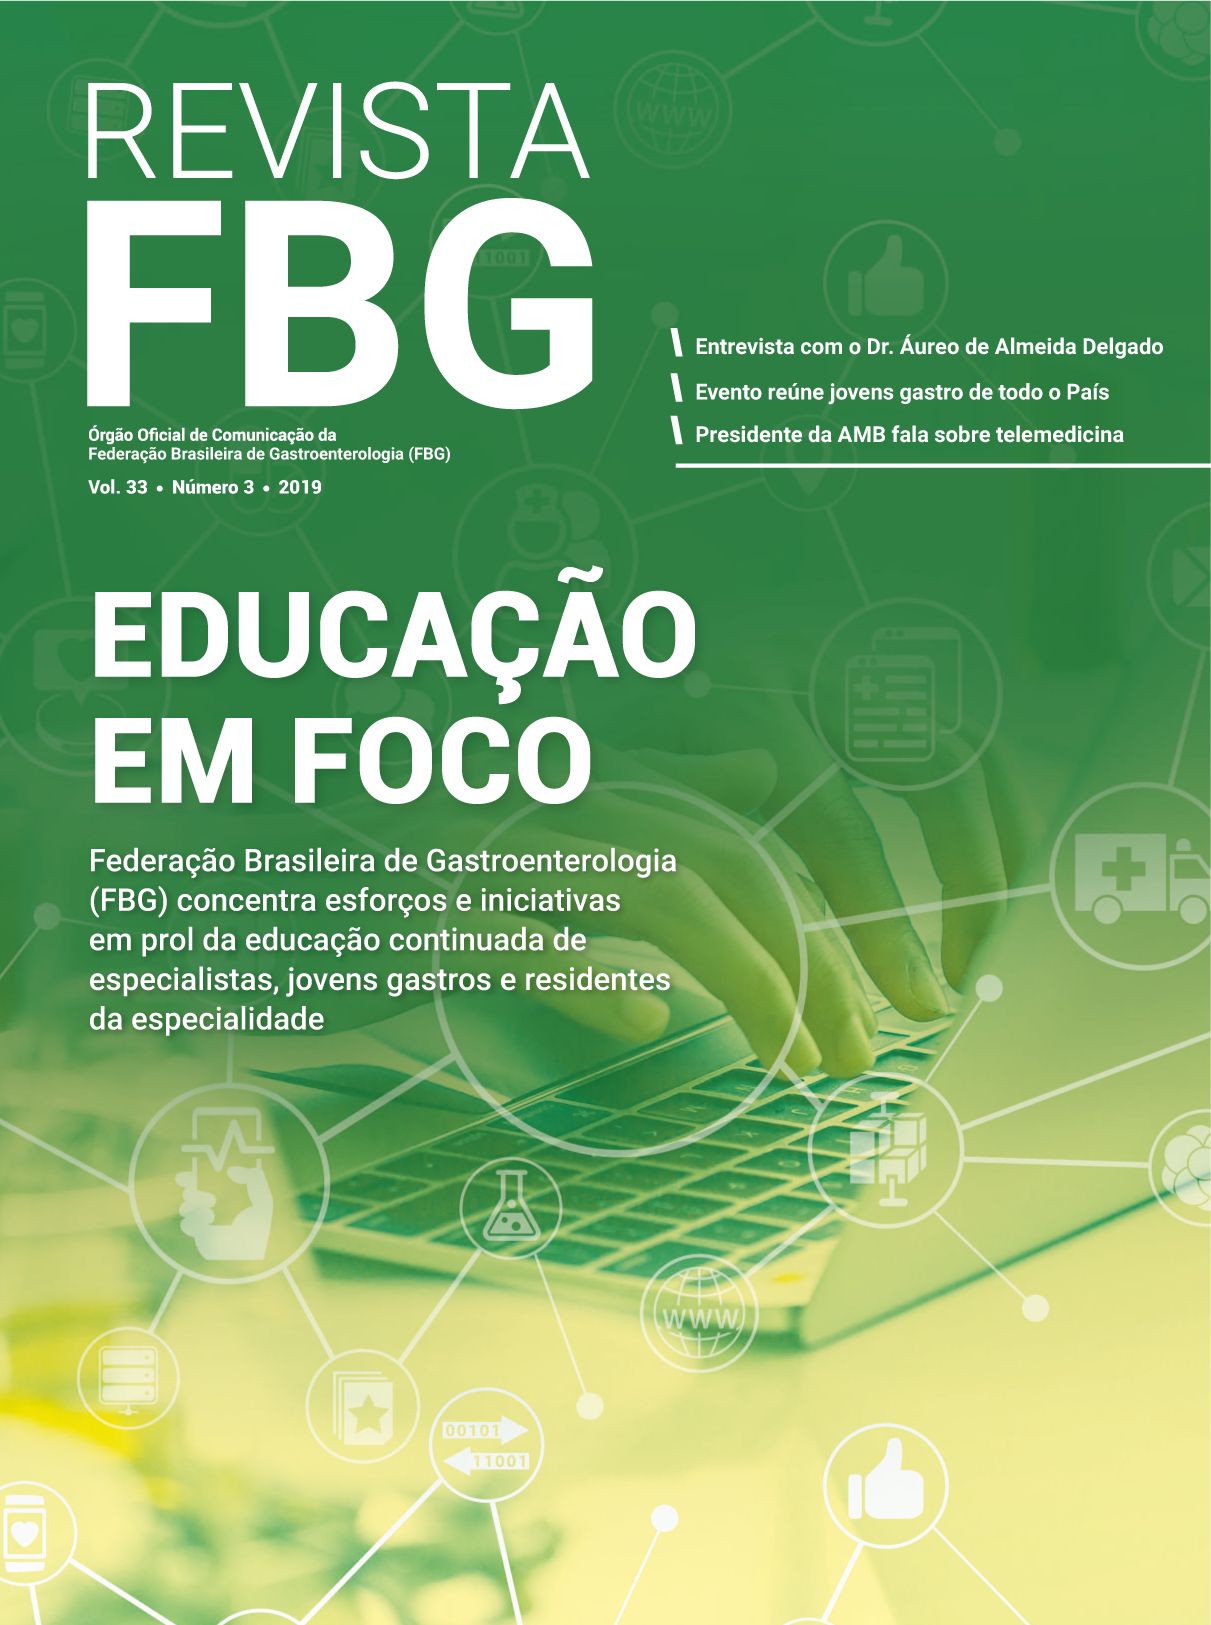 Revista FBG Vol. 33 Nº 3 - 2019